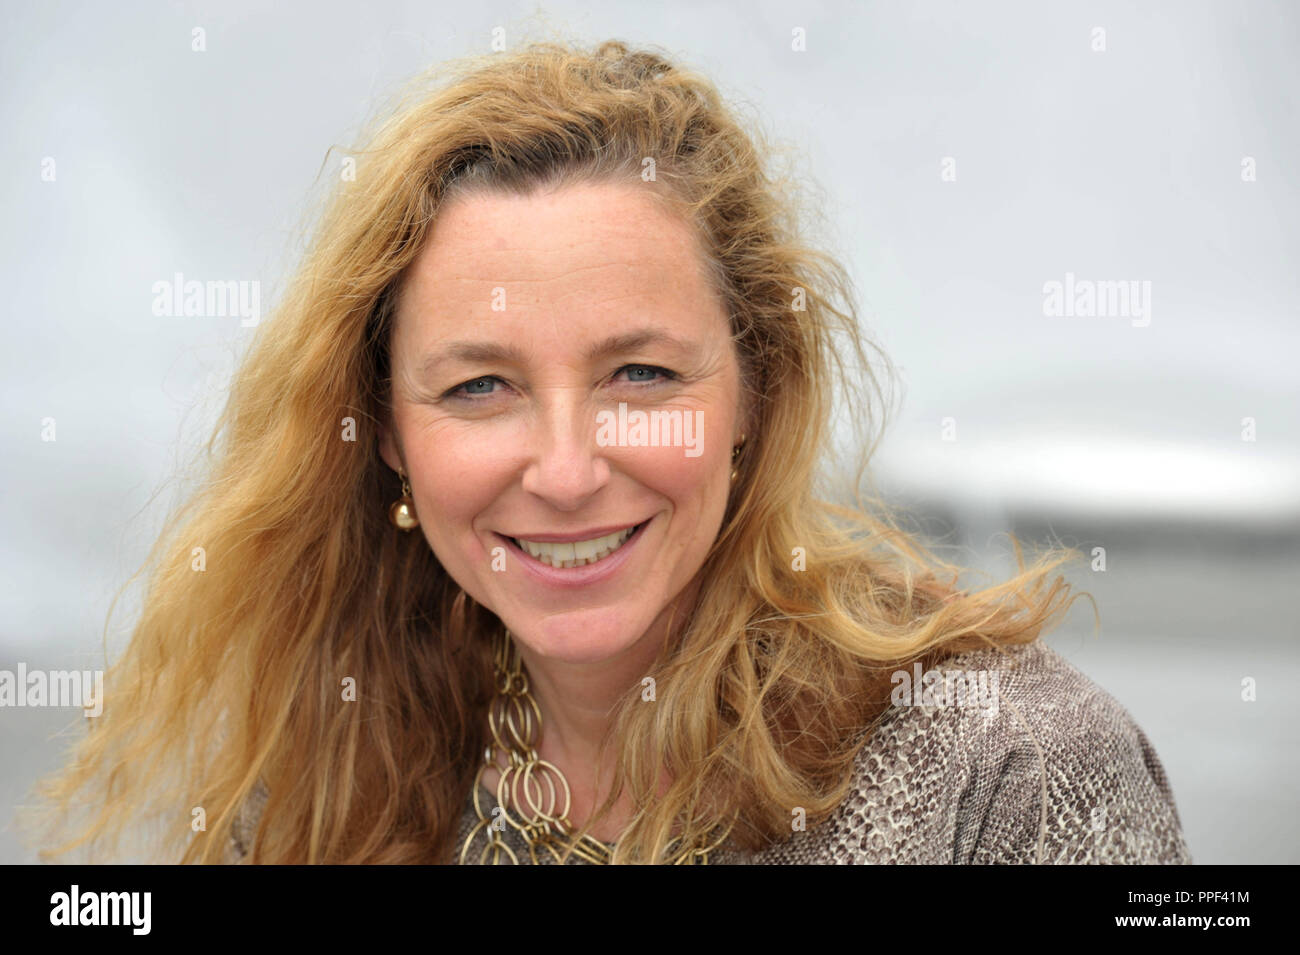 Diana Iljine, managing director of Muenchner Filmwochen and director of Filmfest Muenchen, pictured at the Stachus Fountain. - Stock Image